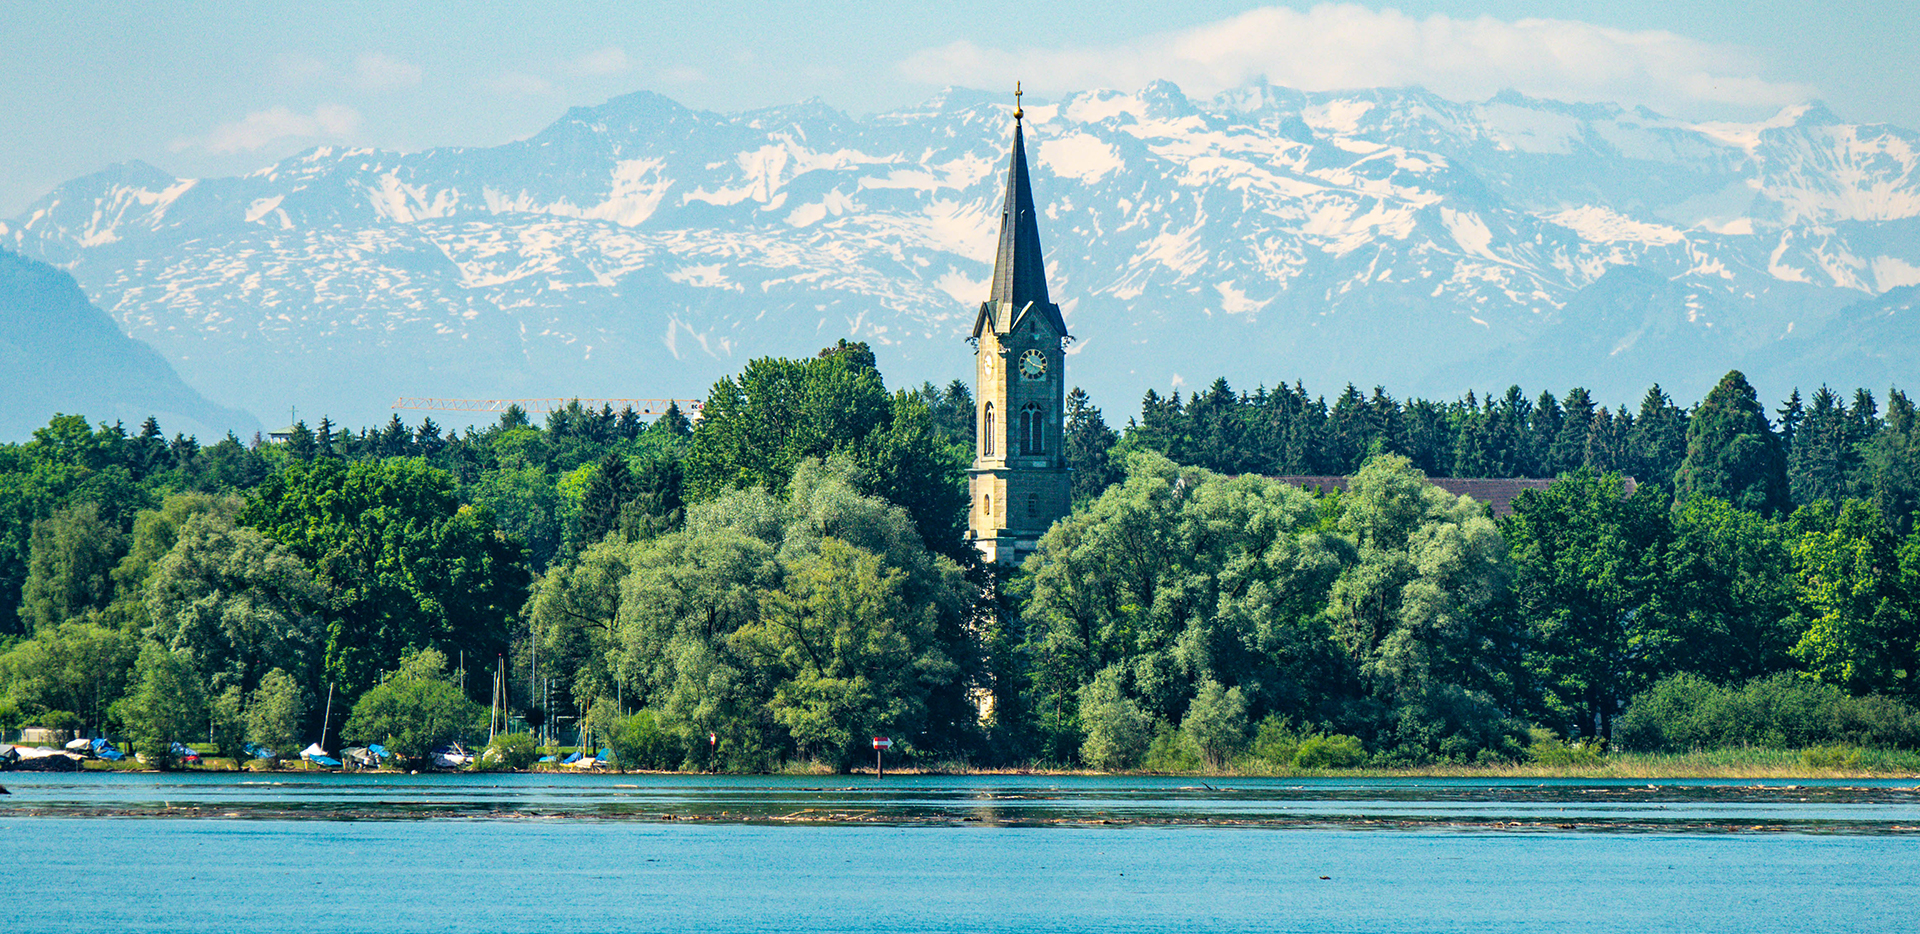 Lake Constance Bodensee Church Tower And Swiss Alps